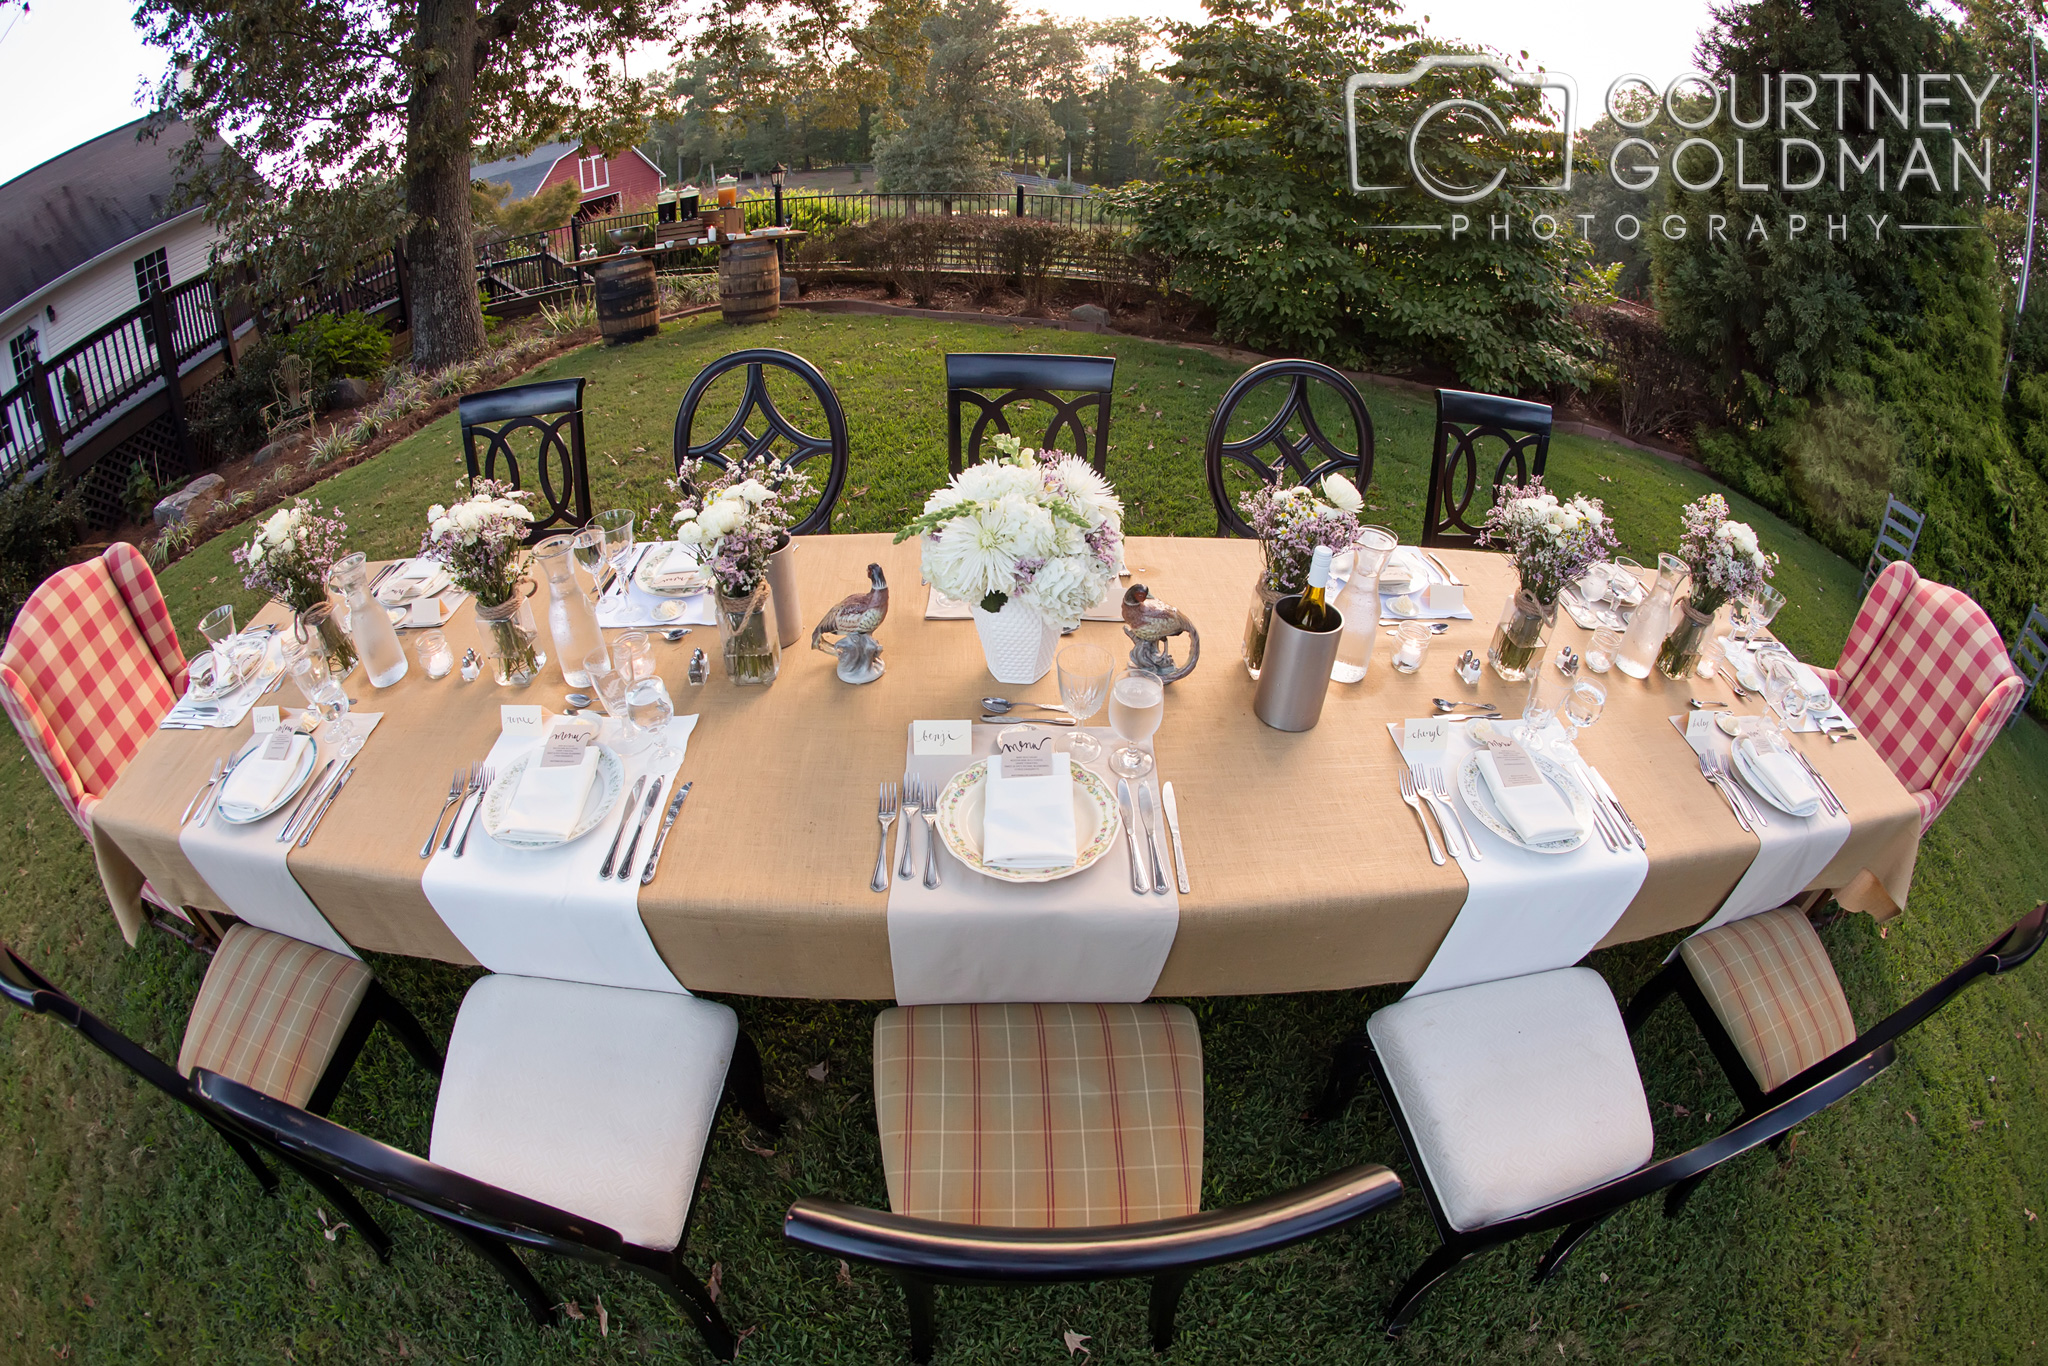 Backyard-Summer-Dinner-Birthday-in-Georgia-with-A-Divine-Event-by-Courtney-Goldman-Photography-08.jpg